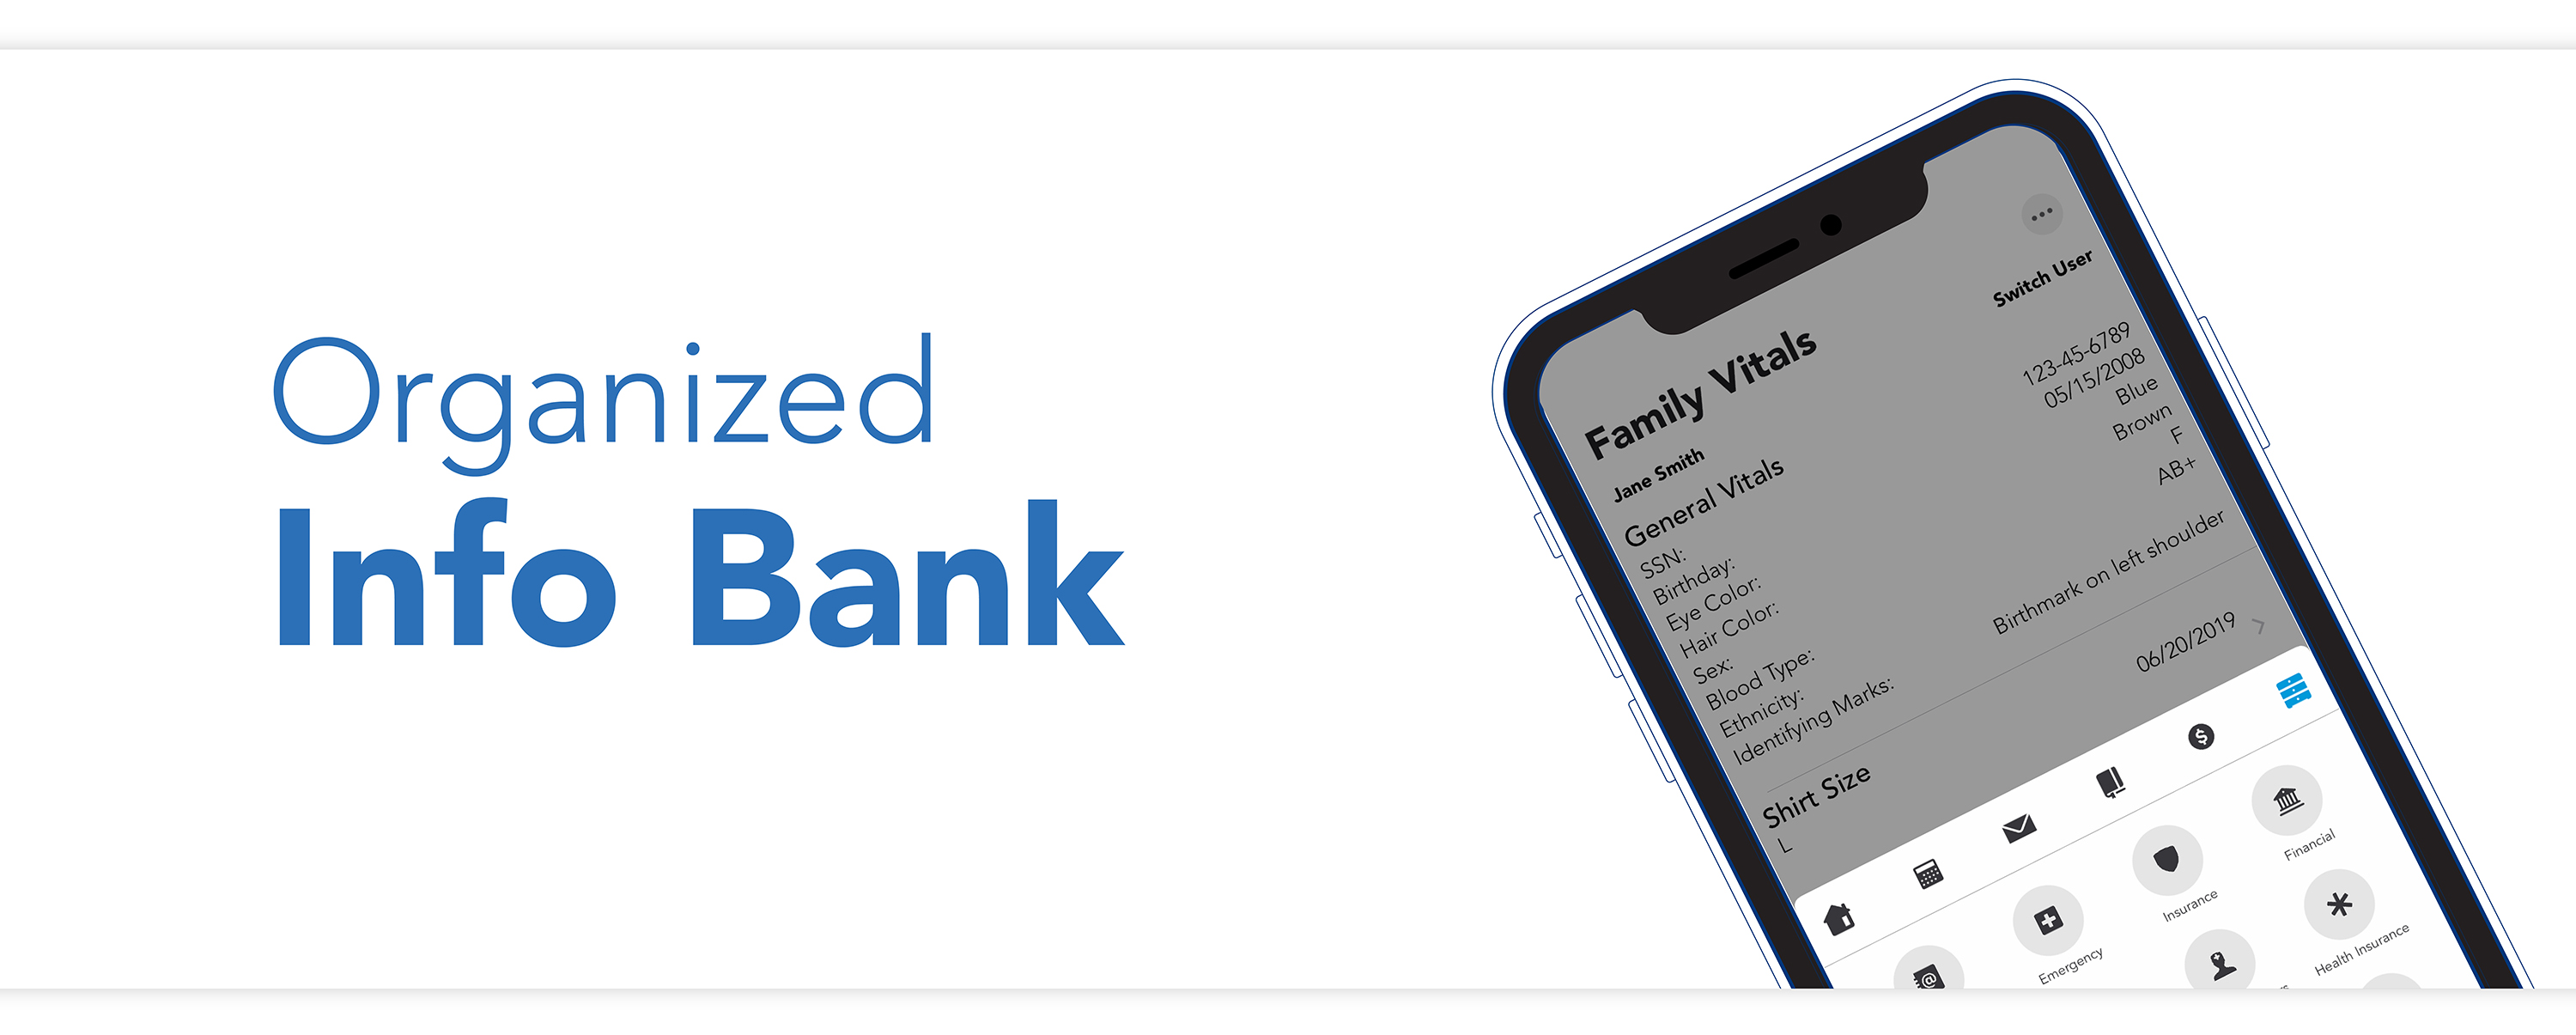 Keep track of medical information, school schedules, contact details, and more in the Info Bank section of the OFW co-parenting app.